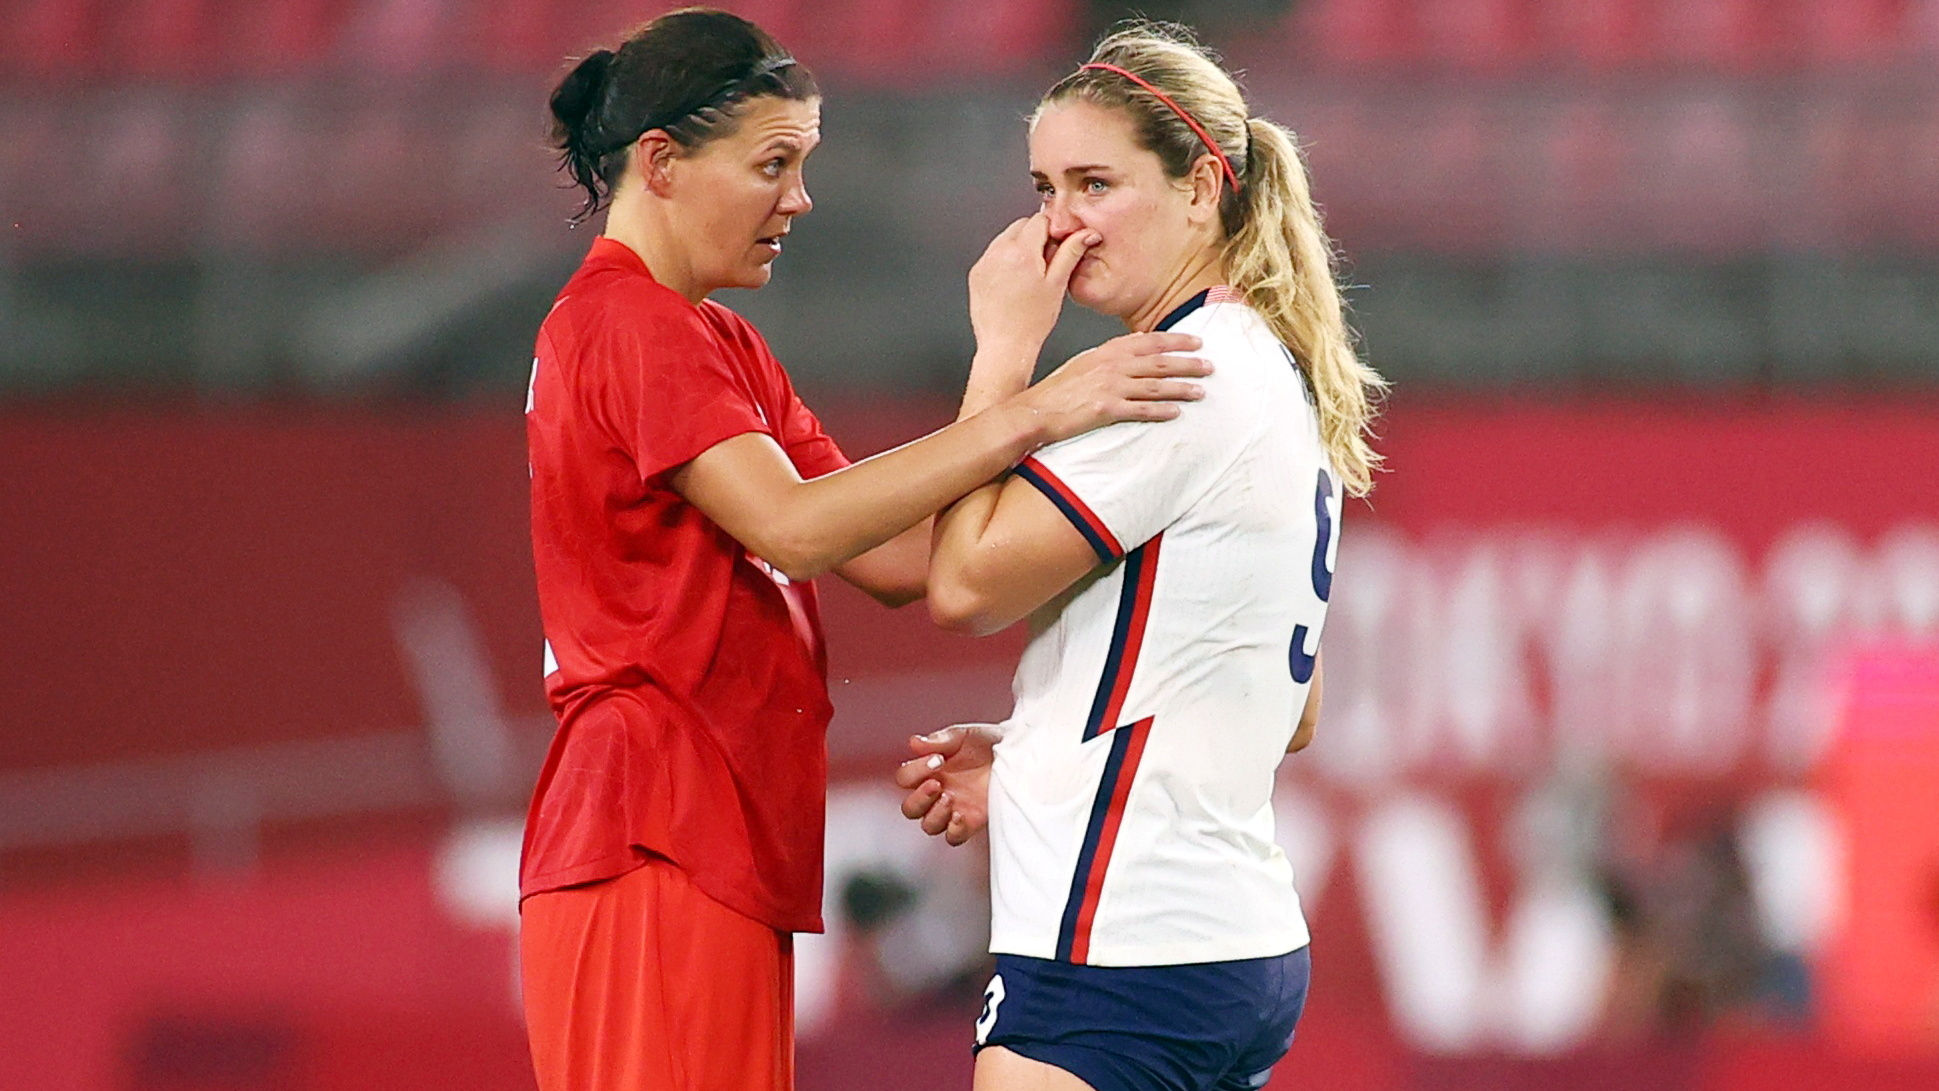 Tokyo 2020 Olympics - Soccer Football - Women - Semifinal - United States v Canada - Ibaraki Kashima Stadium, Ibaraki, Japan - August 2, 2021. Christine Sinclair of Canada with a dejected Lindsey Horan of the United States after the match REUTERS/Edgar Su